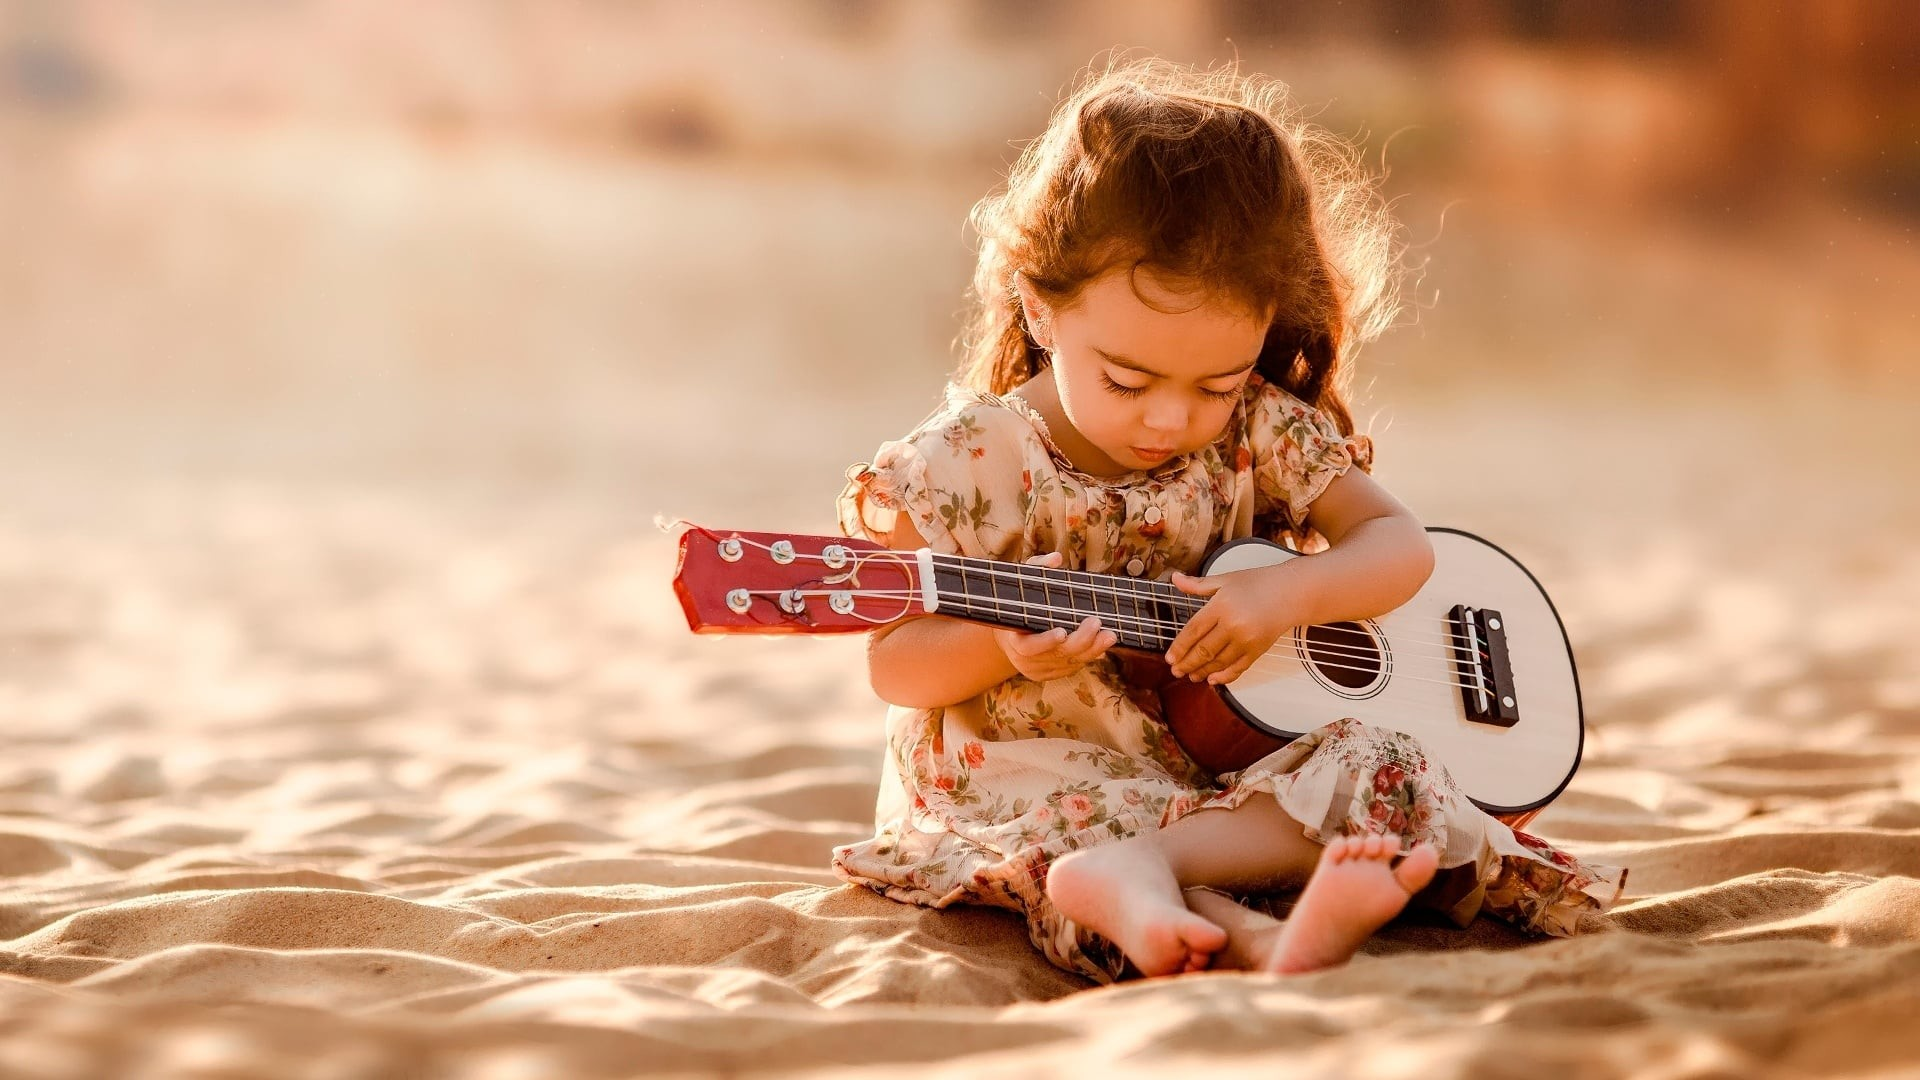 Res: 1920x1080, baby girl with guitar HD wallpapers